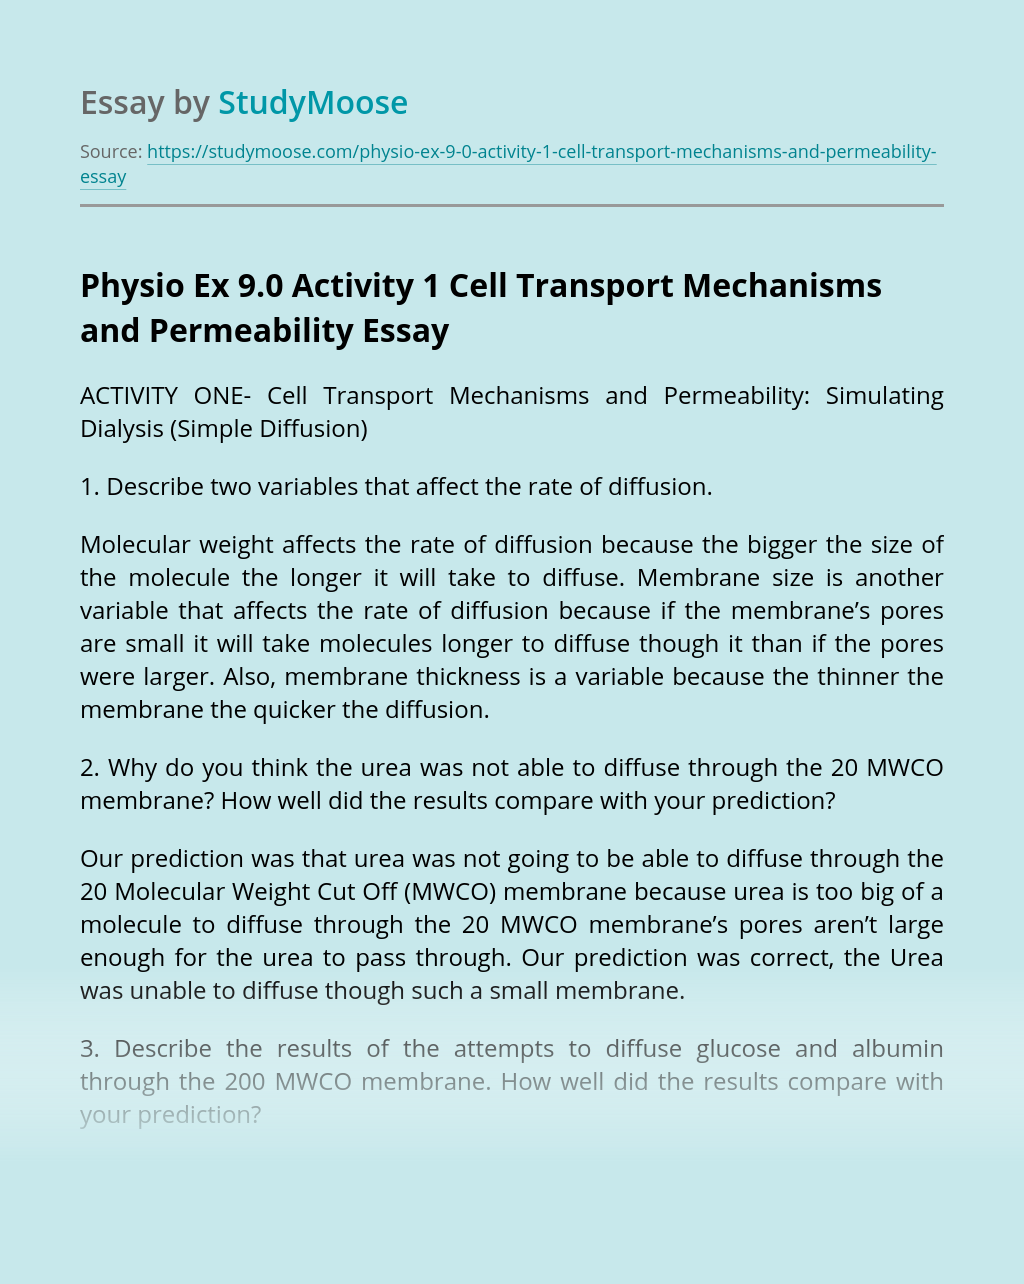 Physio Ex 9.0 Activity 1 Cell Transport Mechanisms and Permeability